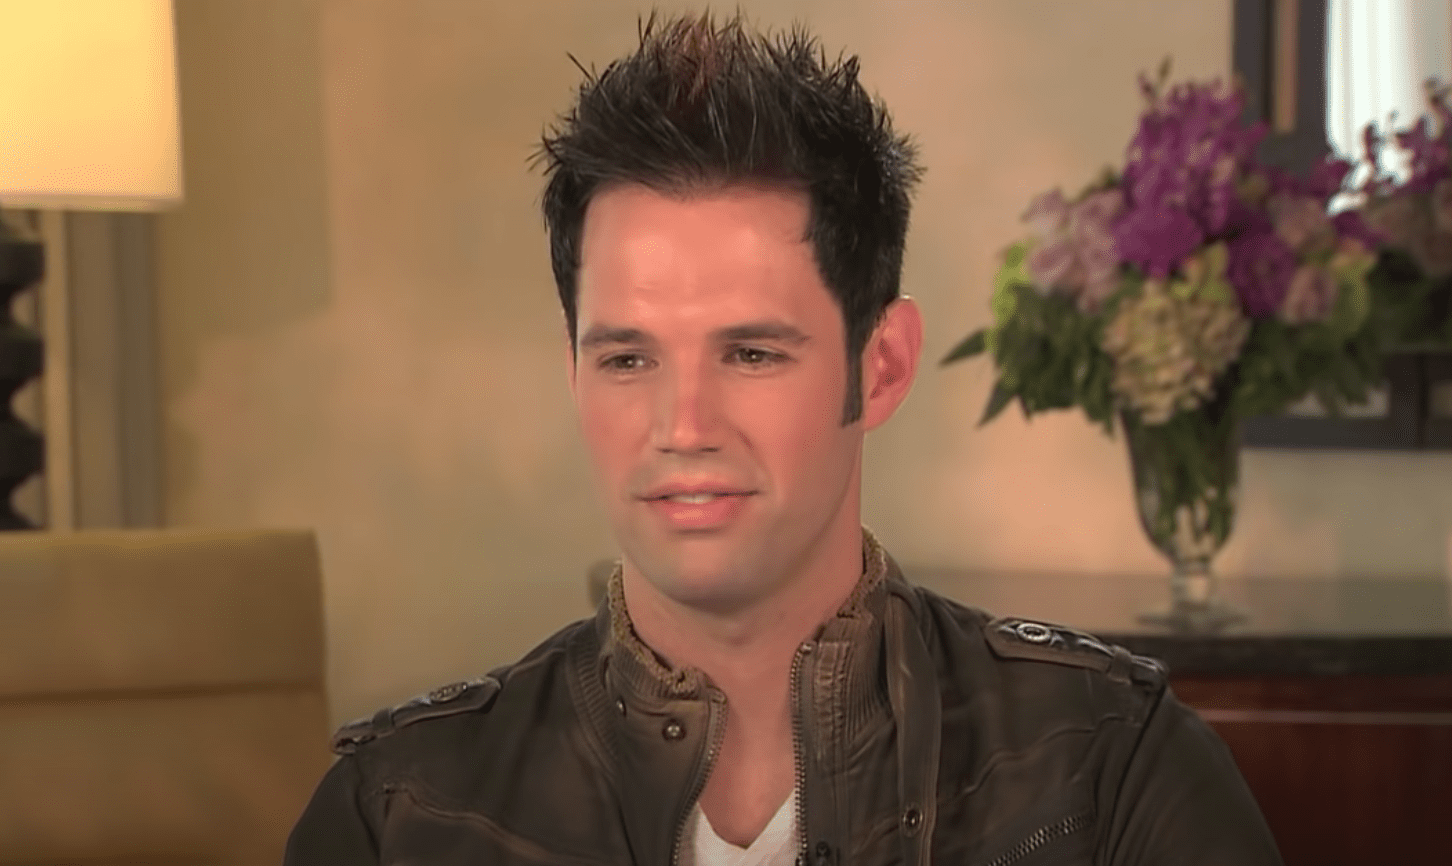 Image Source: Youtube/David Osmond/David in an interview